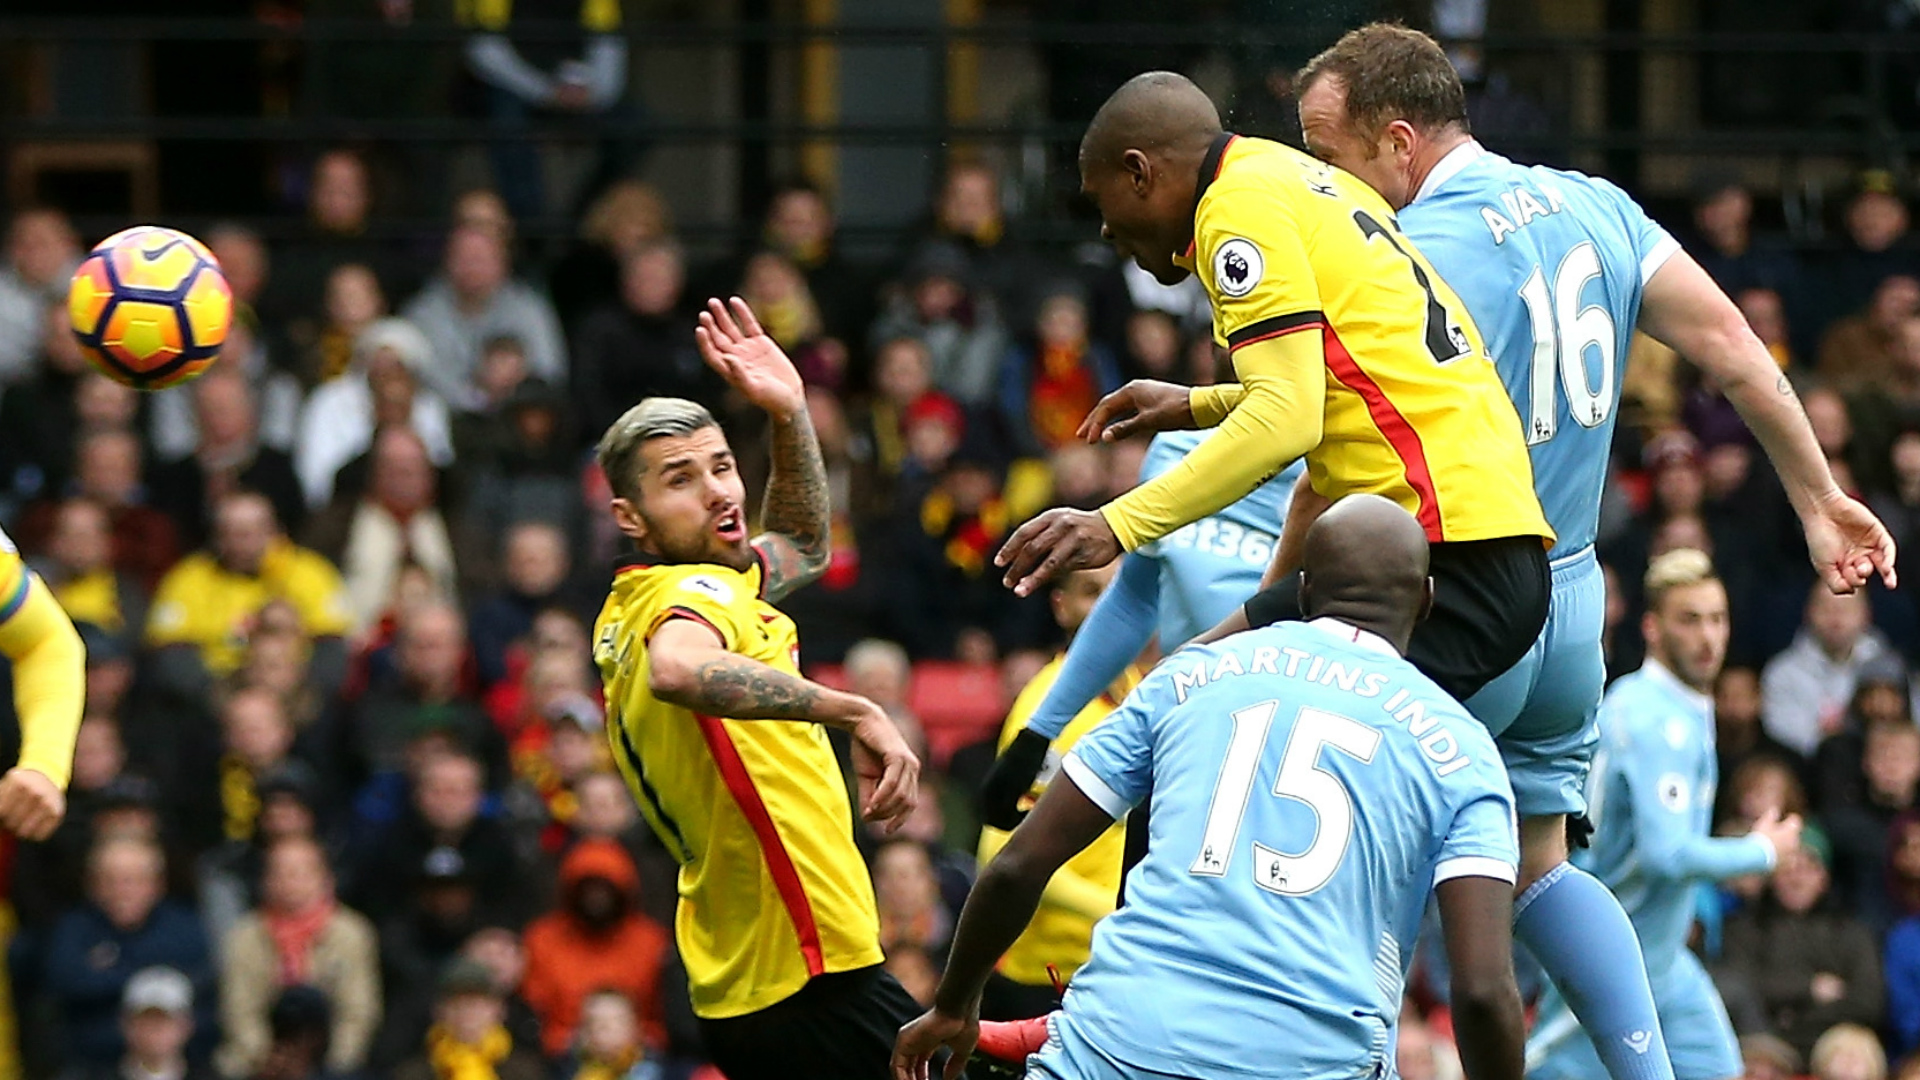 Watford defender Younes Kaboul doubtful for Stoke City clash